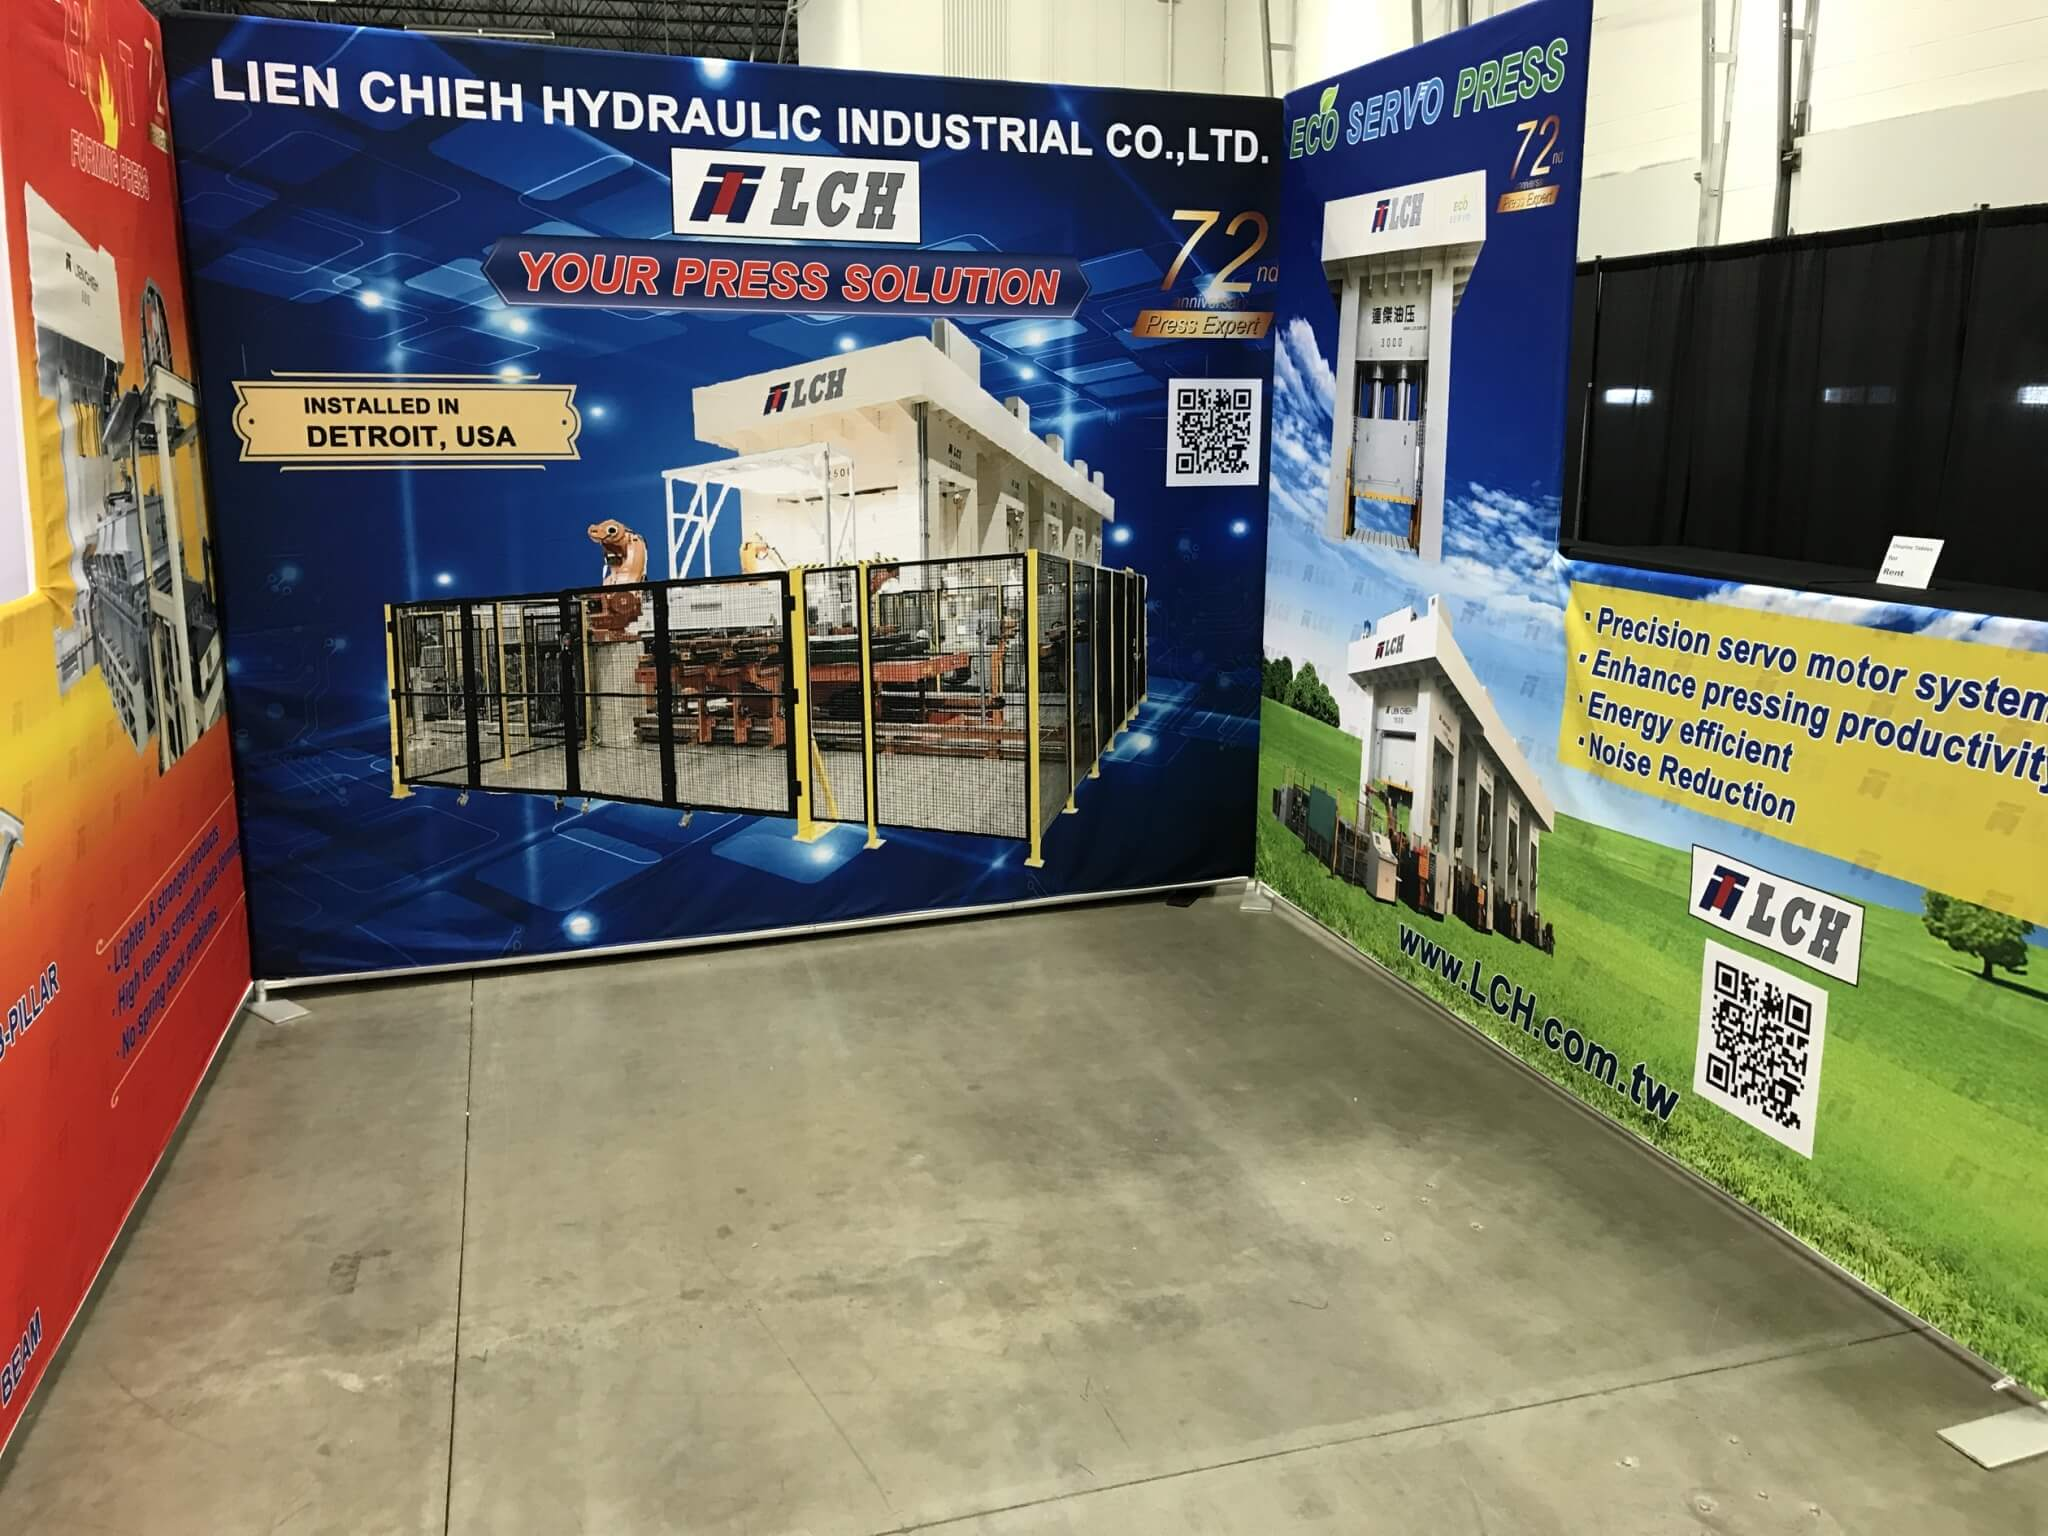 A01-連傑油壓工業股份有限公司 LIEN CHIEH HYDRAULIC INDUSTRIAL CO., LTD.-1